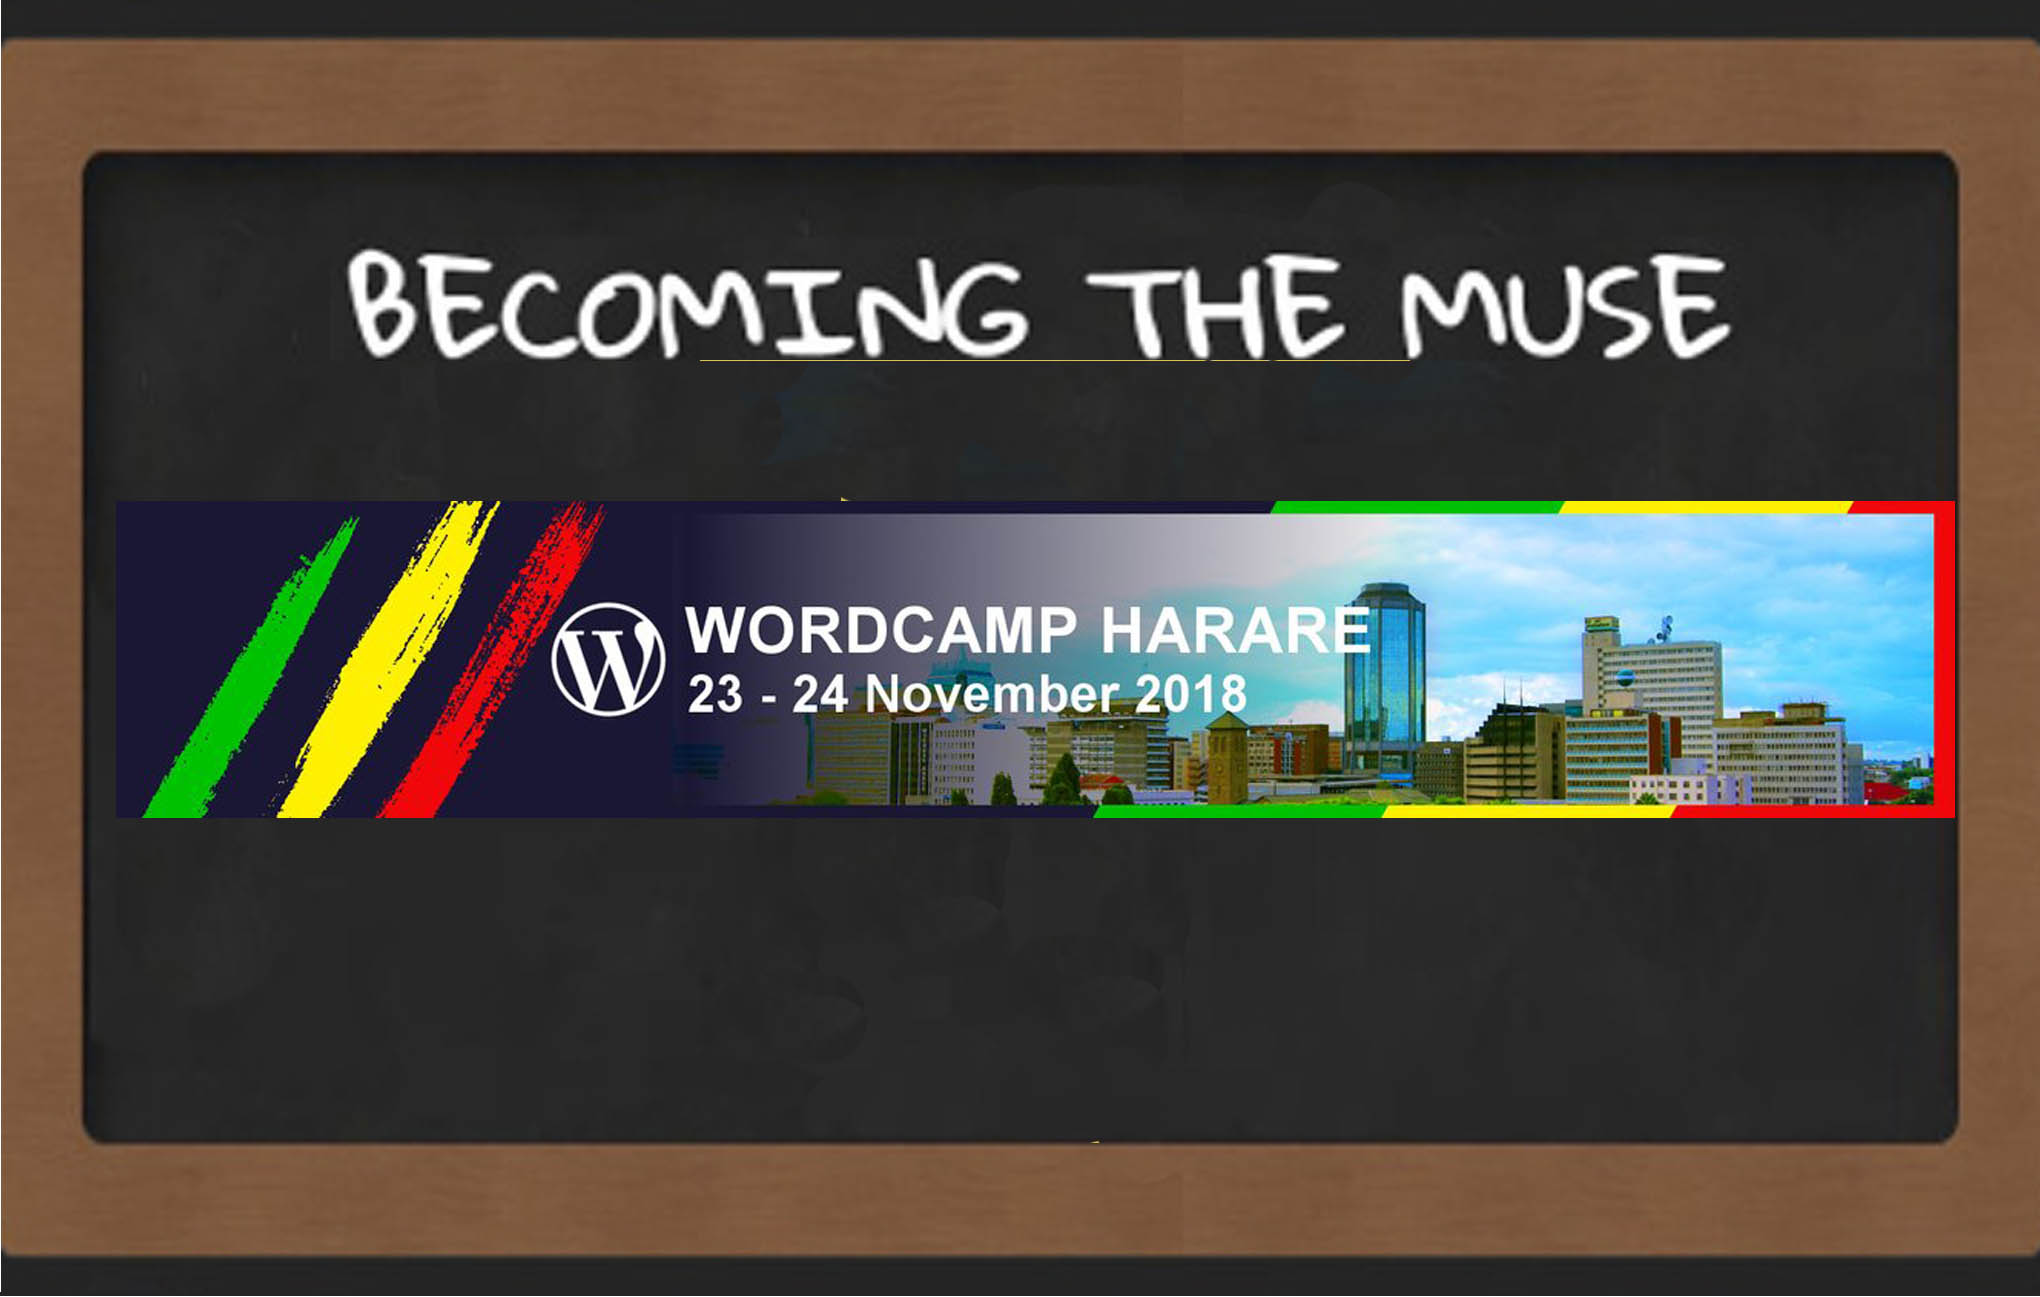 wordcamp harare 2018